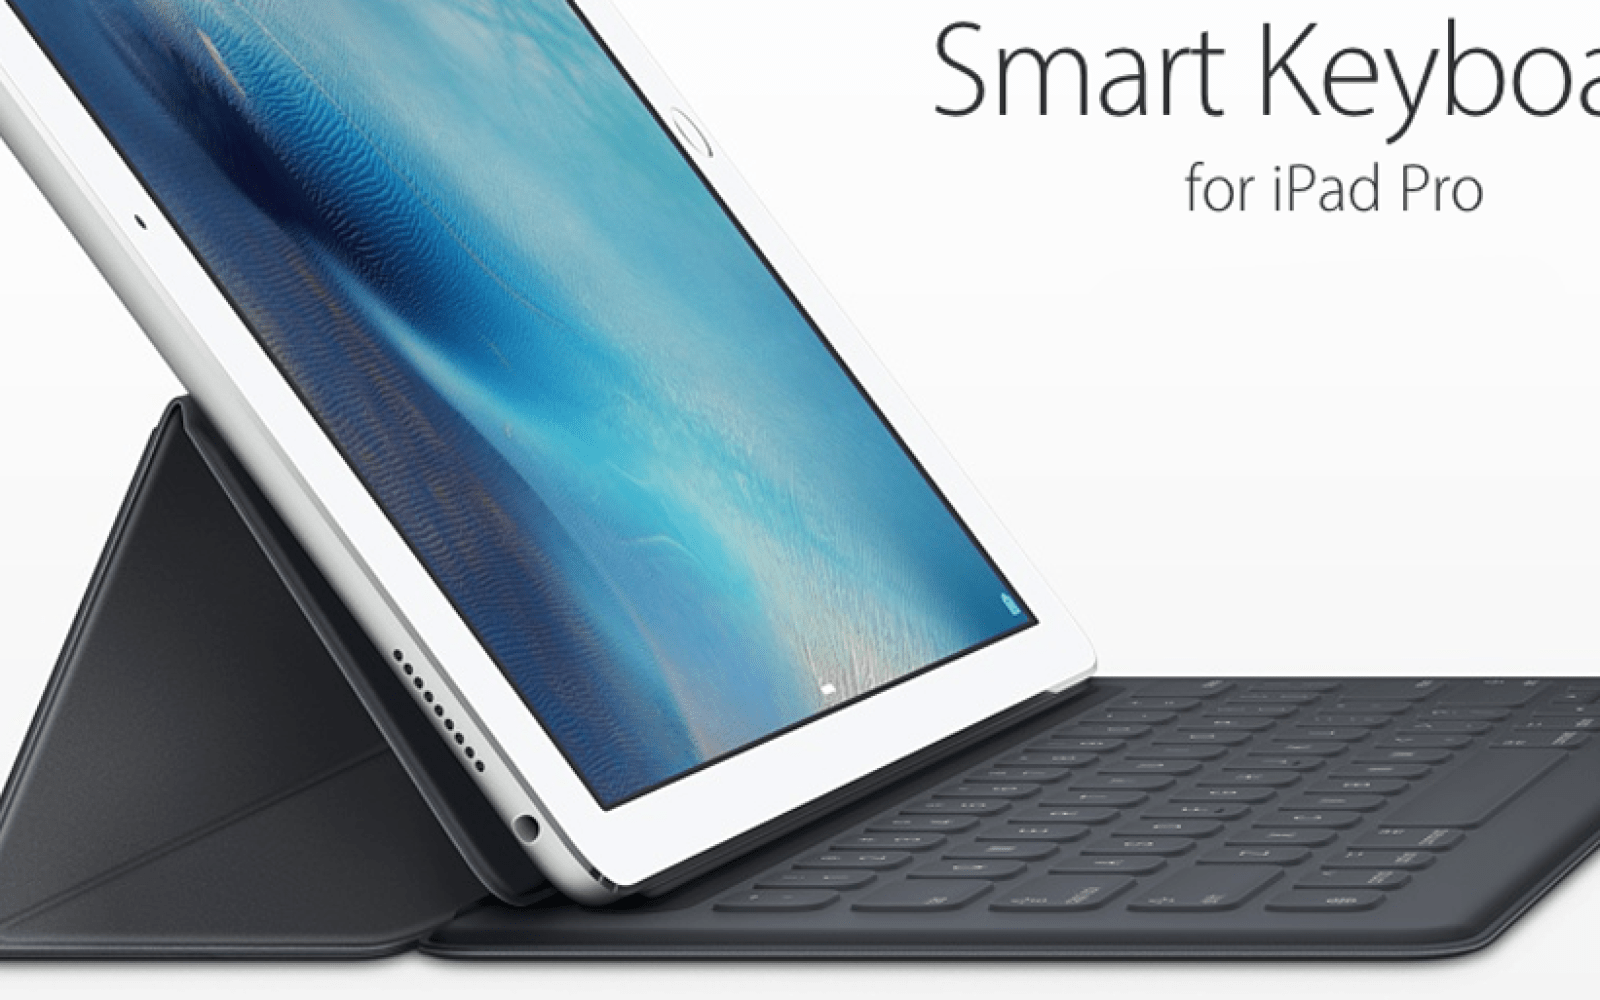 Apple responds to month-long wait for iPad Pro accessories, expecting 'regular shipments'